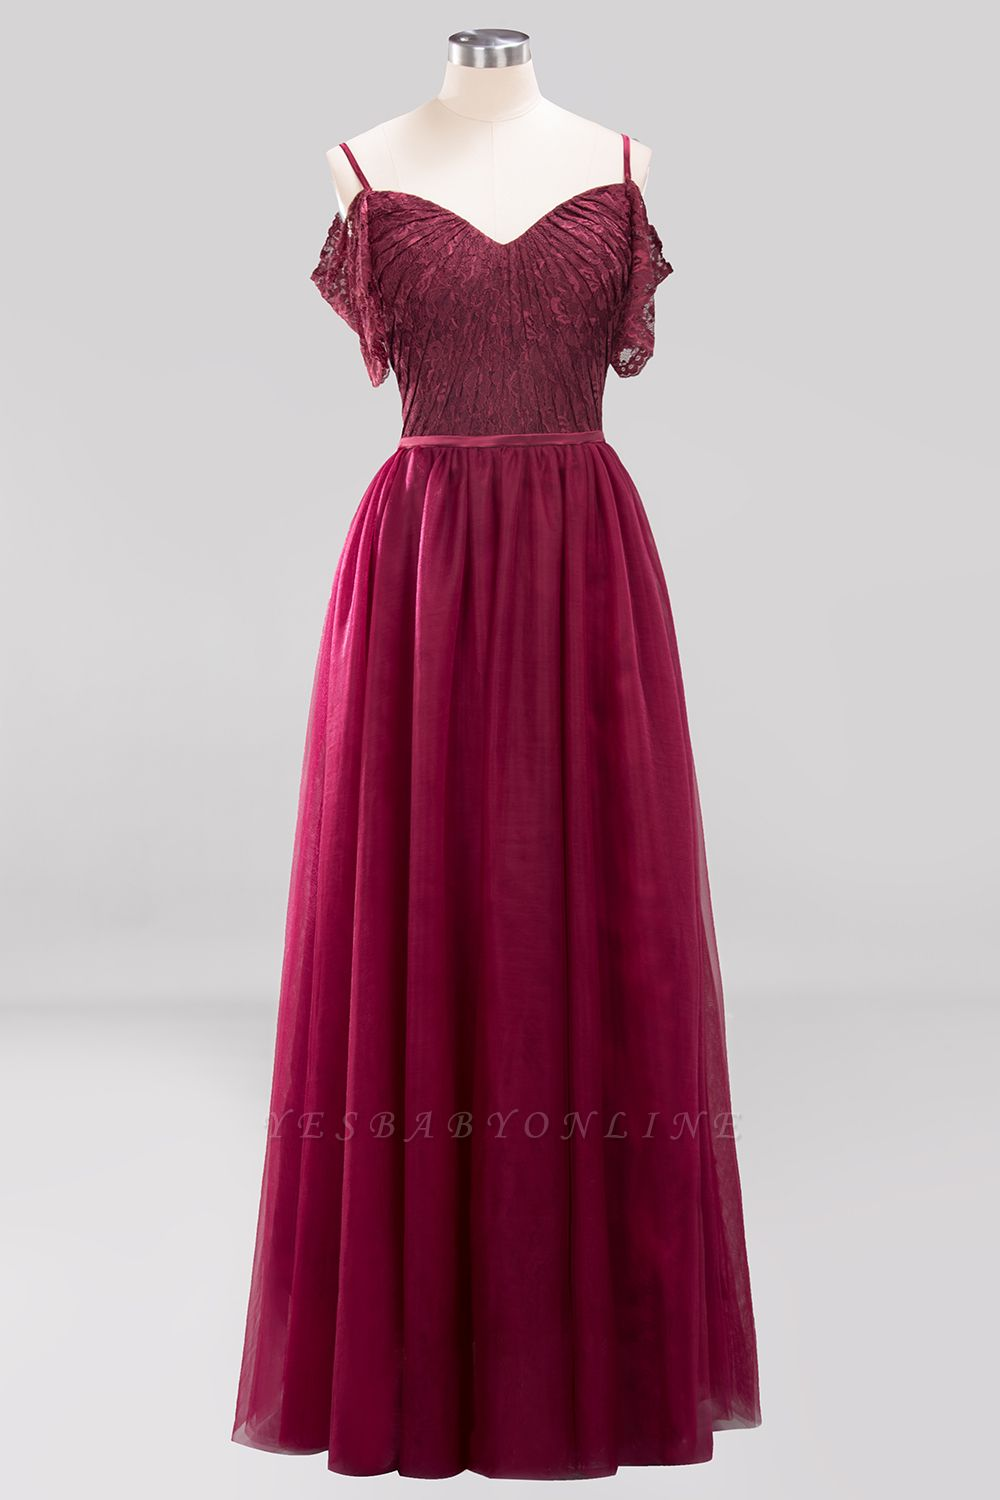 A-Line  Lace Sweetheart Spaghetti Straps Short-Sleeves Floor-Length Bridesmaid Dresses with Ruffles